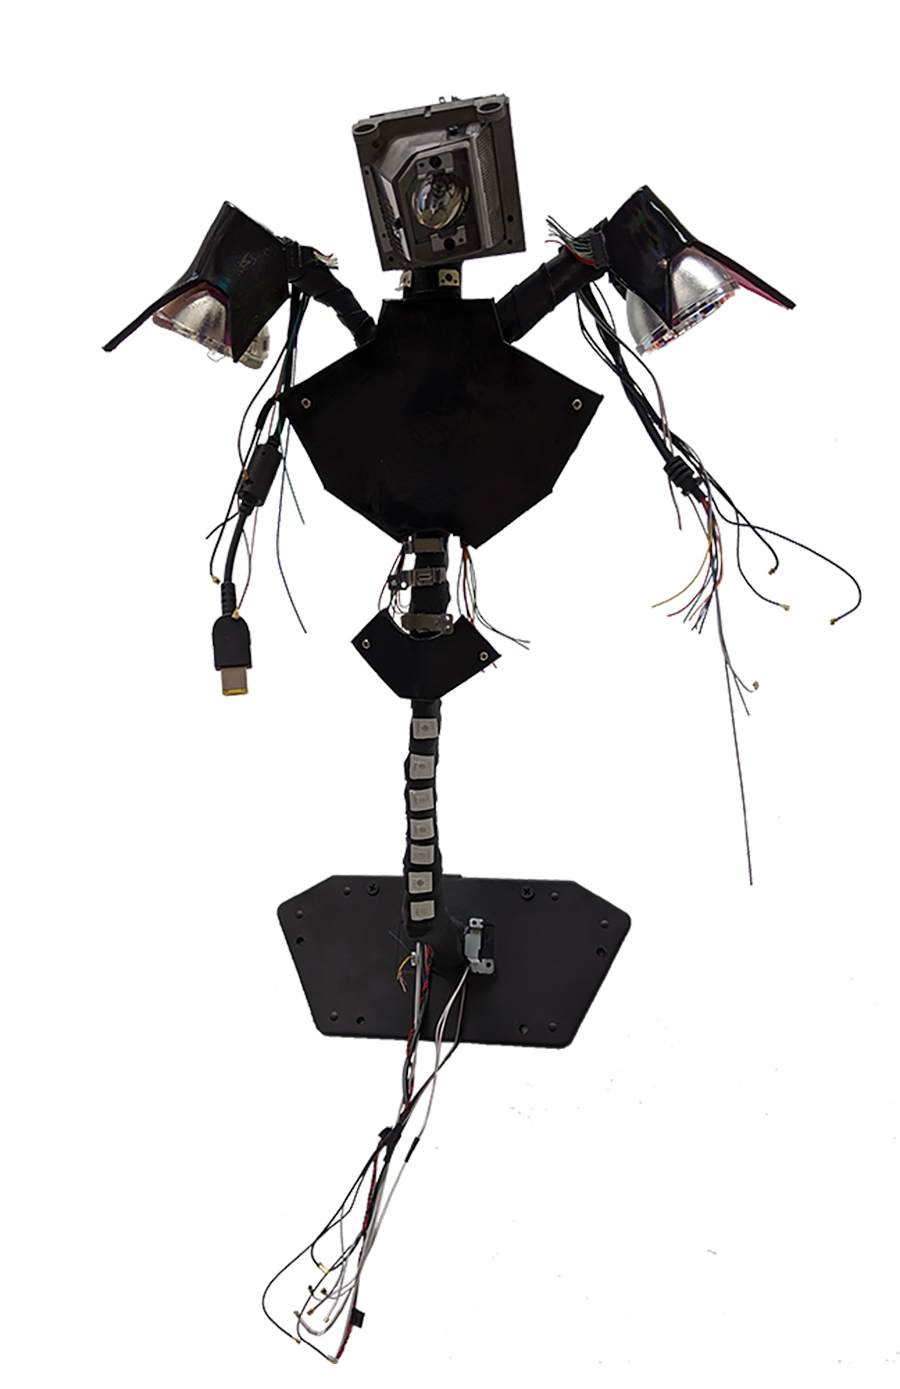 Sculpture in arranged humanistic form made of LED strips, wires, laptop charger, Worbla thermoplastic, EVA foam, plastic utensils, projector bulbs, stretch pleather, and small computer parts.